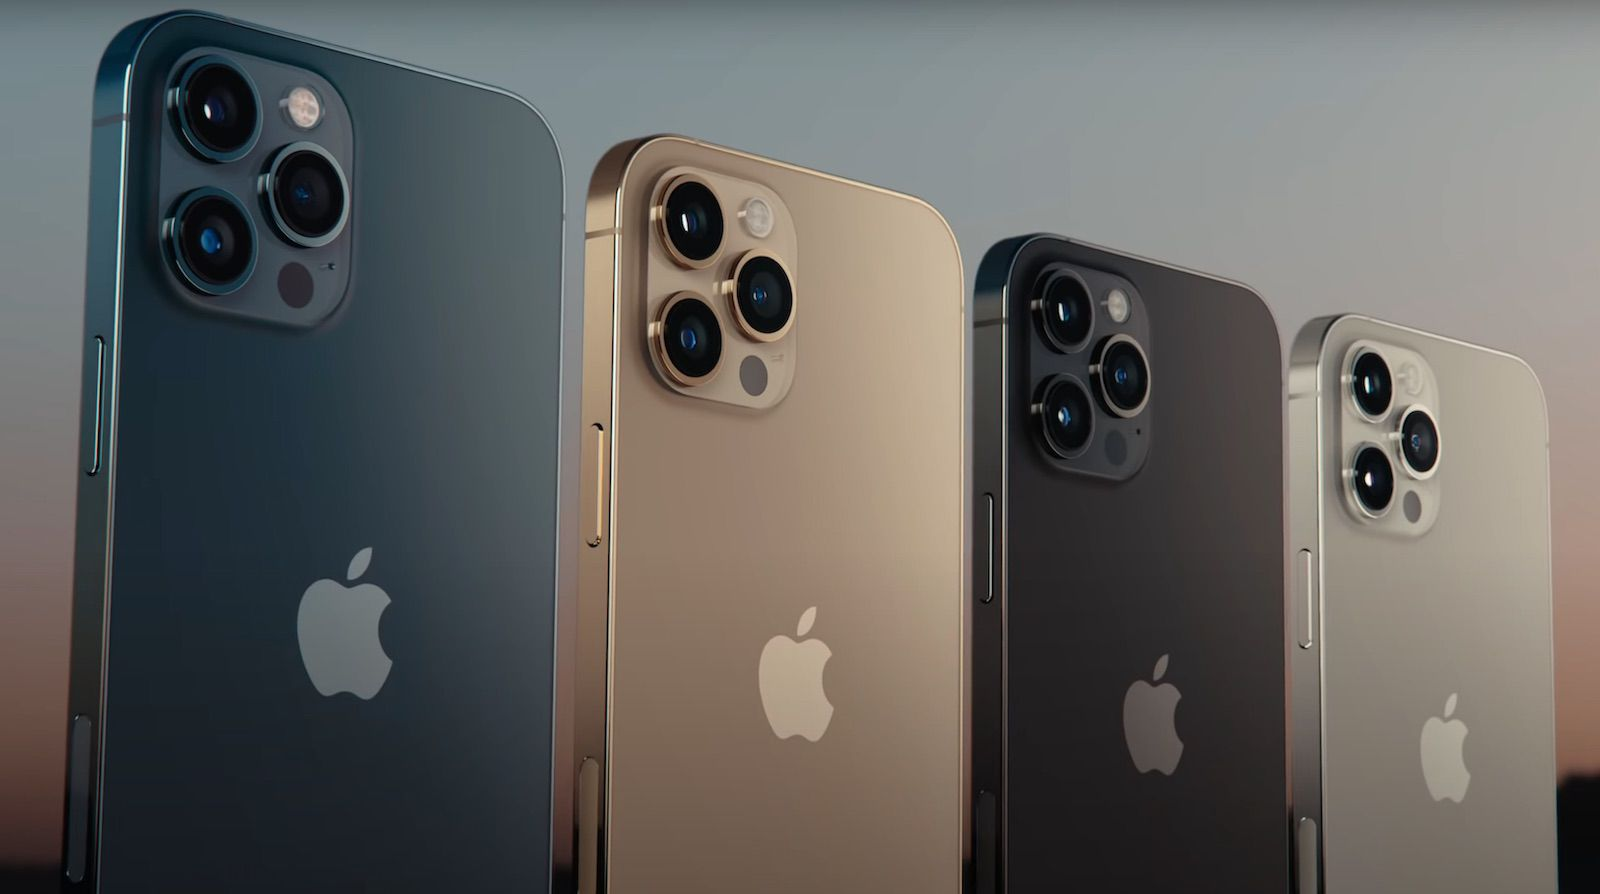 Apple Forecasted to Sell Record-Breaking 240+ Million iPhones in 2021